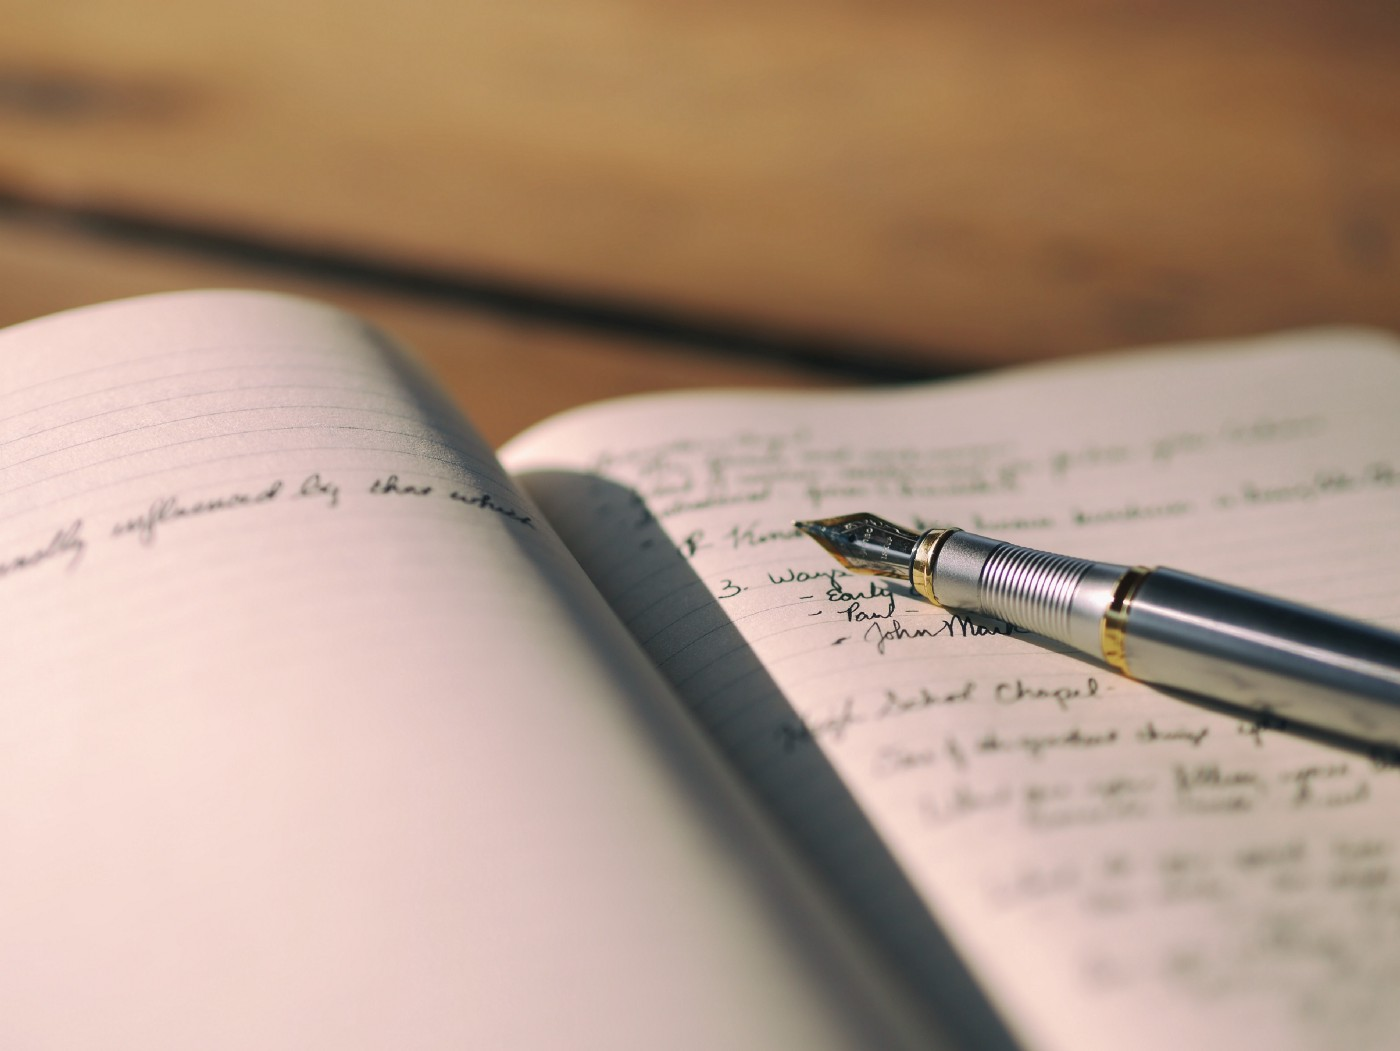 Photo of journal, pencial, and writing